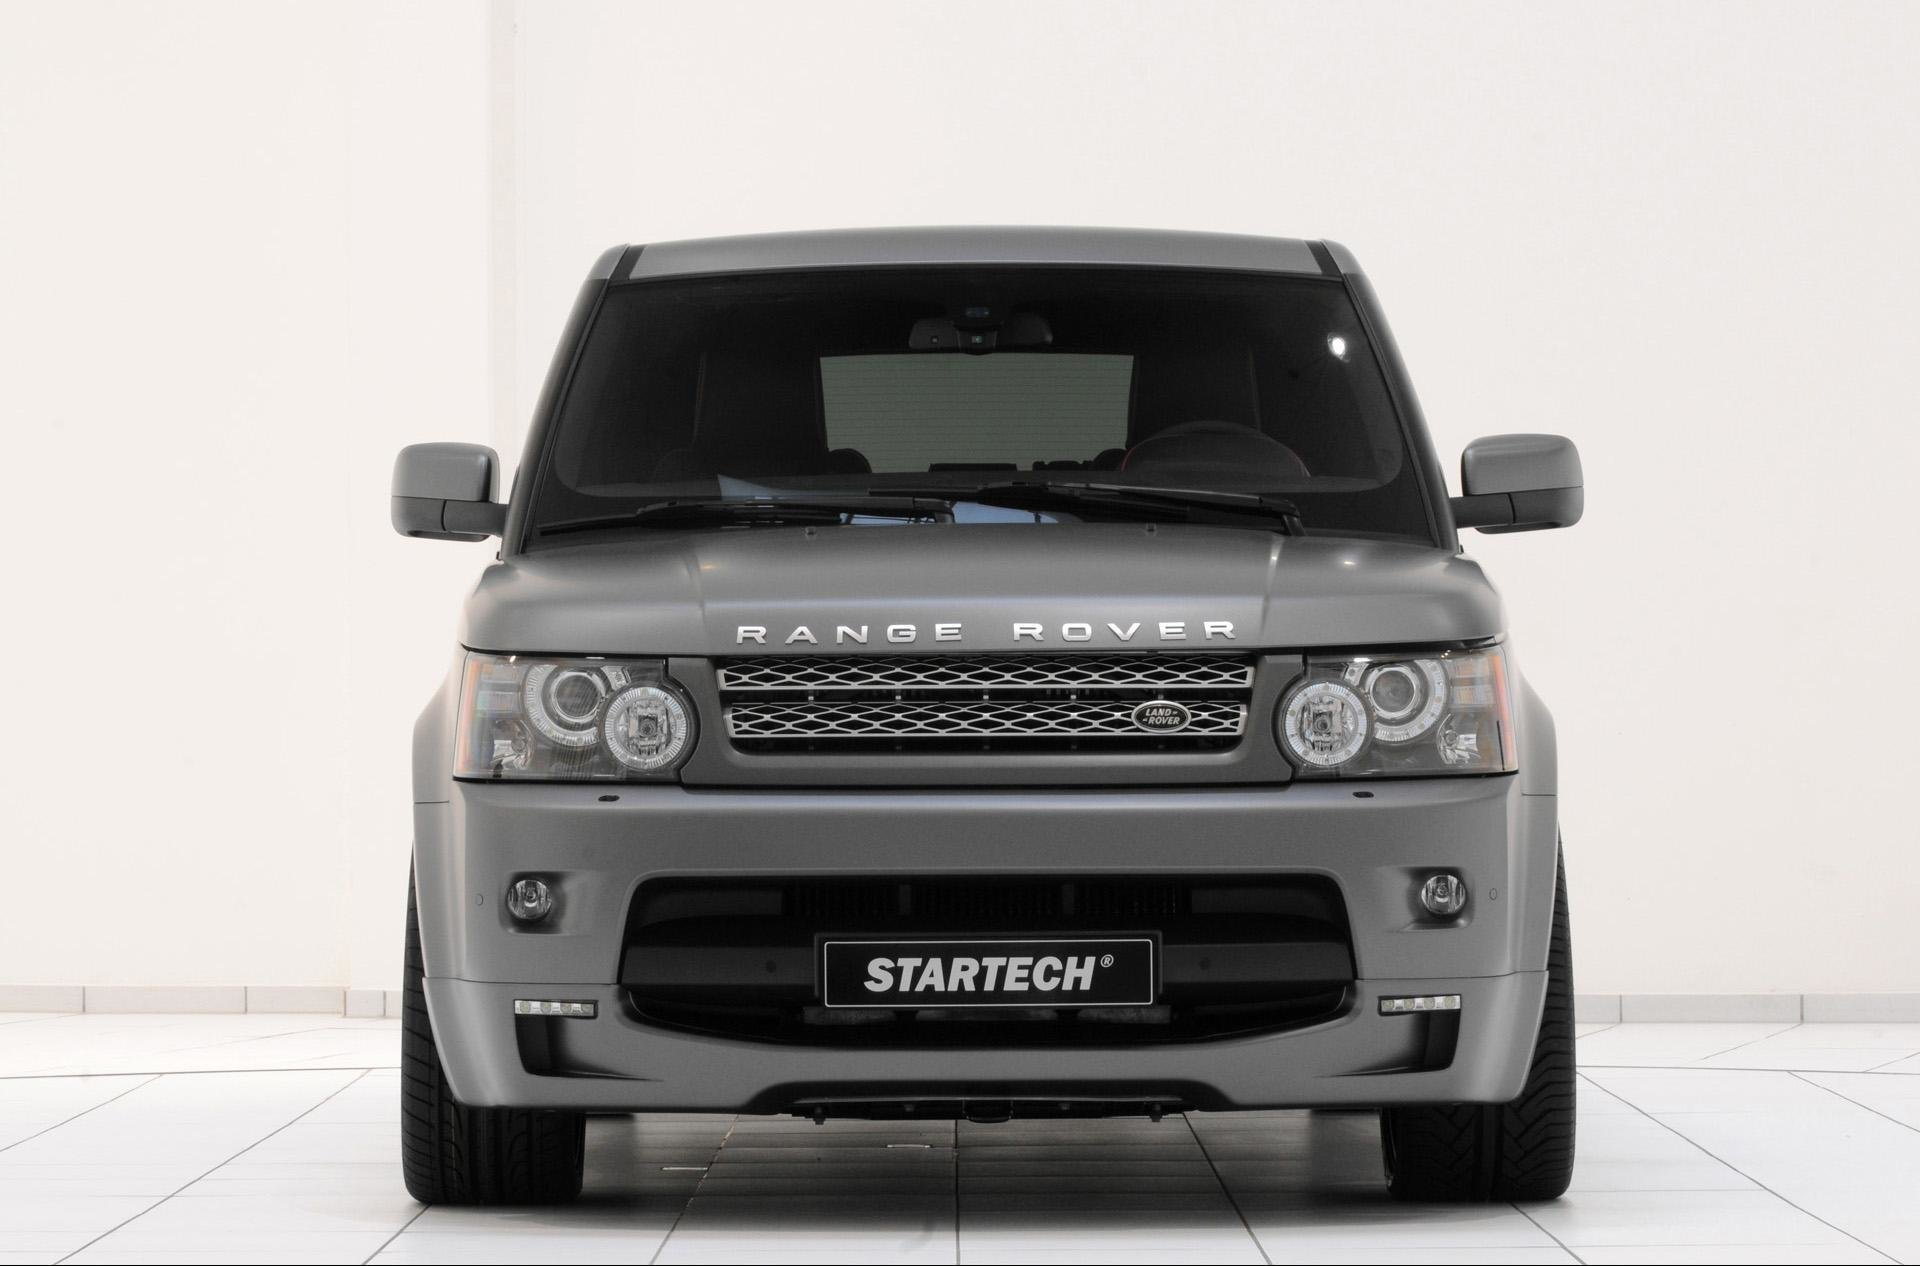 New 2011 Startech Range Rover Sport News And Information On This Month